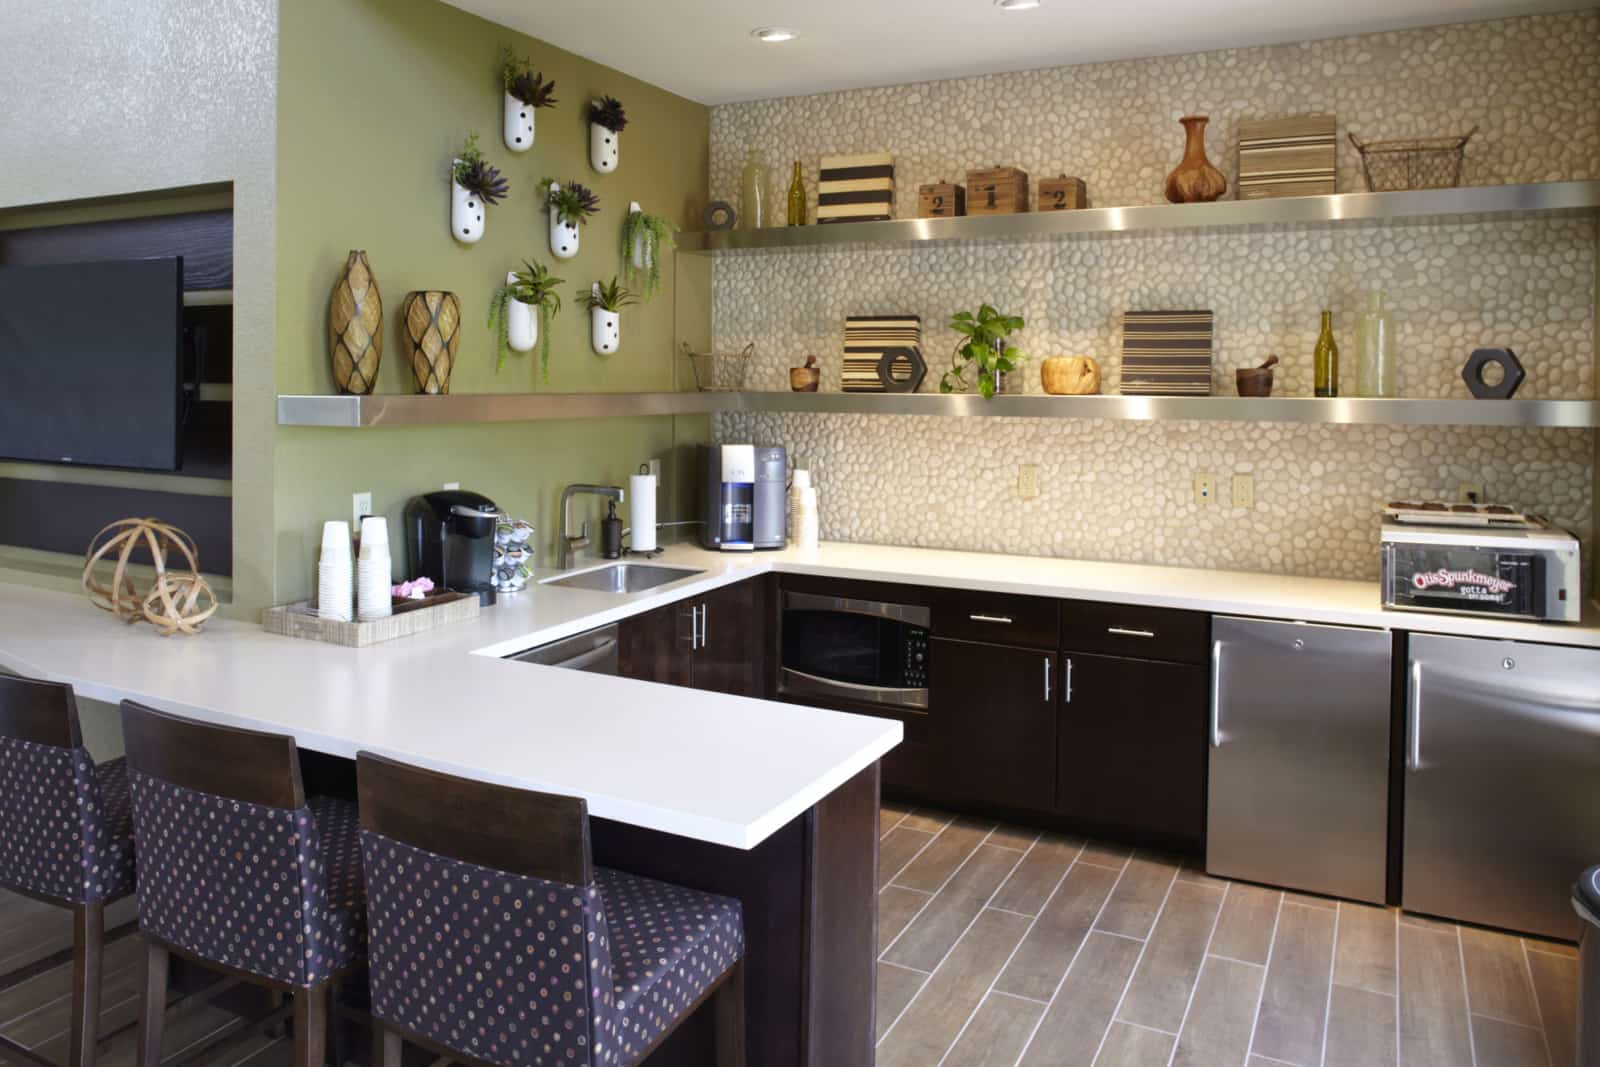 Interior of the common area kitchen with stainless steel appliances, cookie oven, and coffee maker.